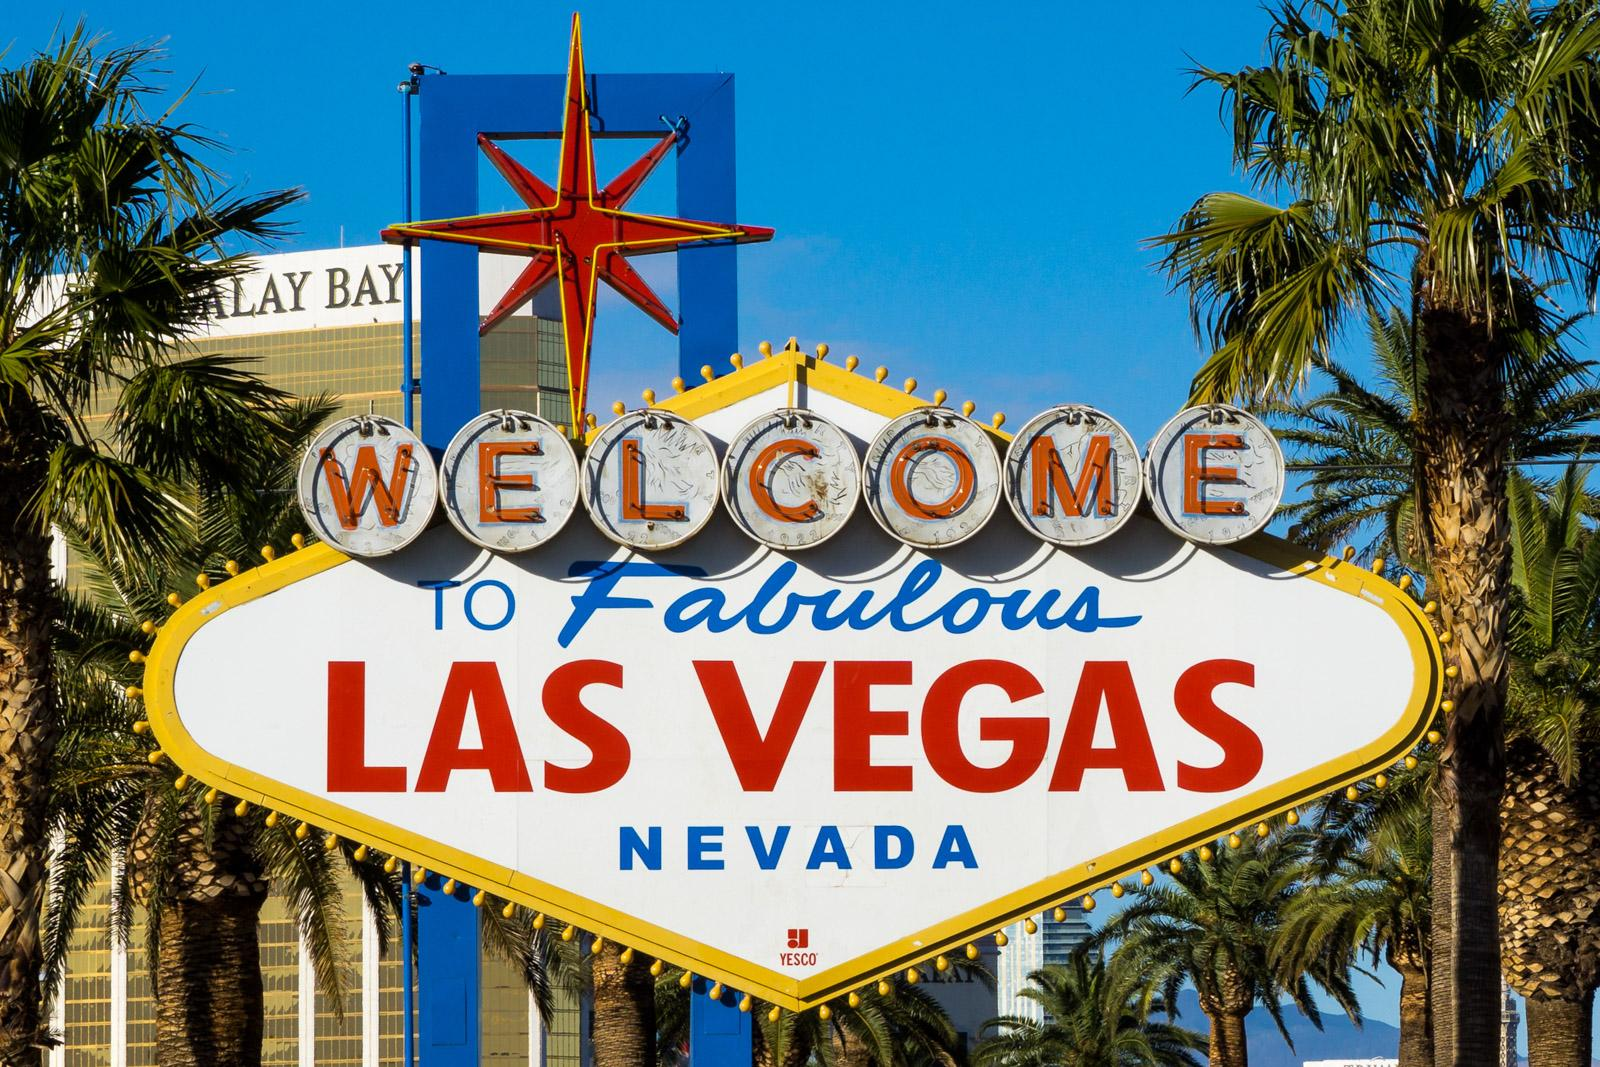 Welcome to fabulous Las Vegas Schild bei Tag